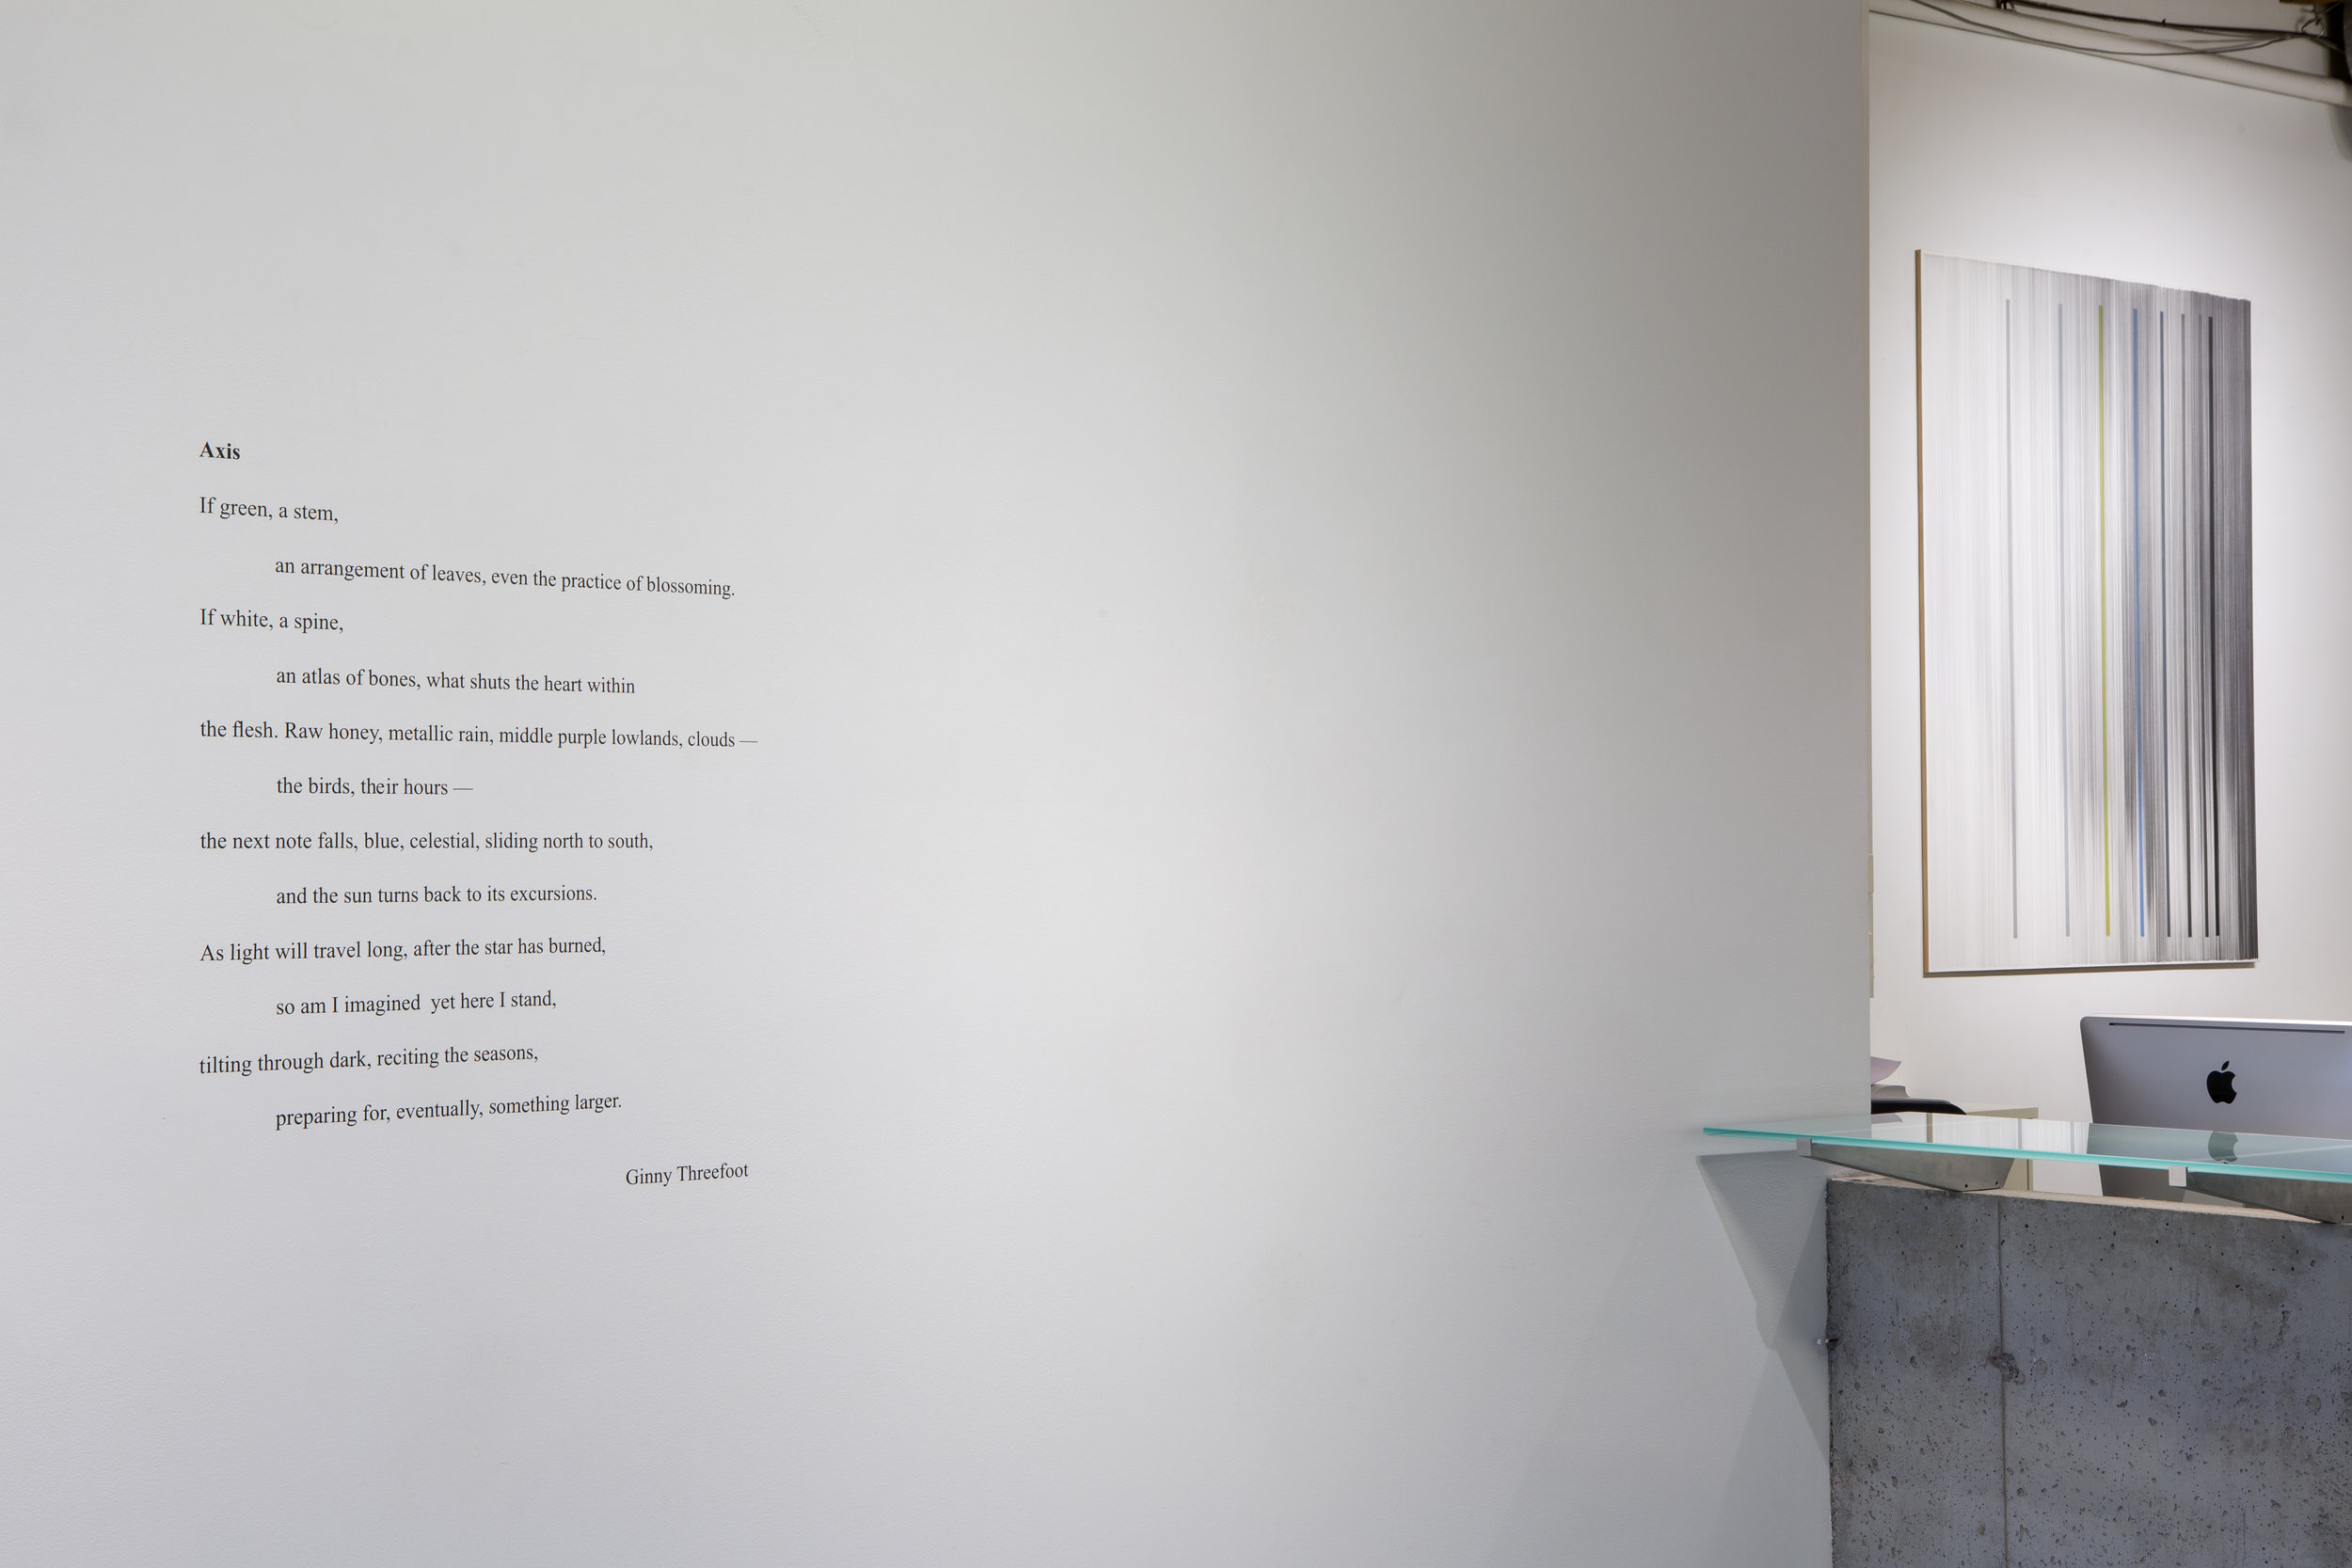 studio view of  Axis  by Ginny Threefoot a poem in response to the work